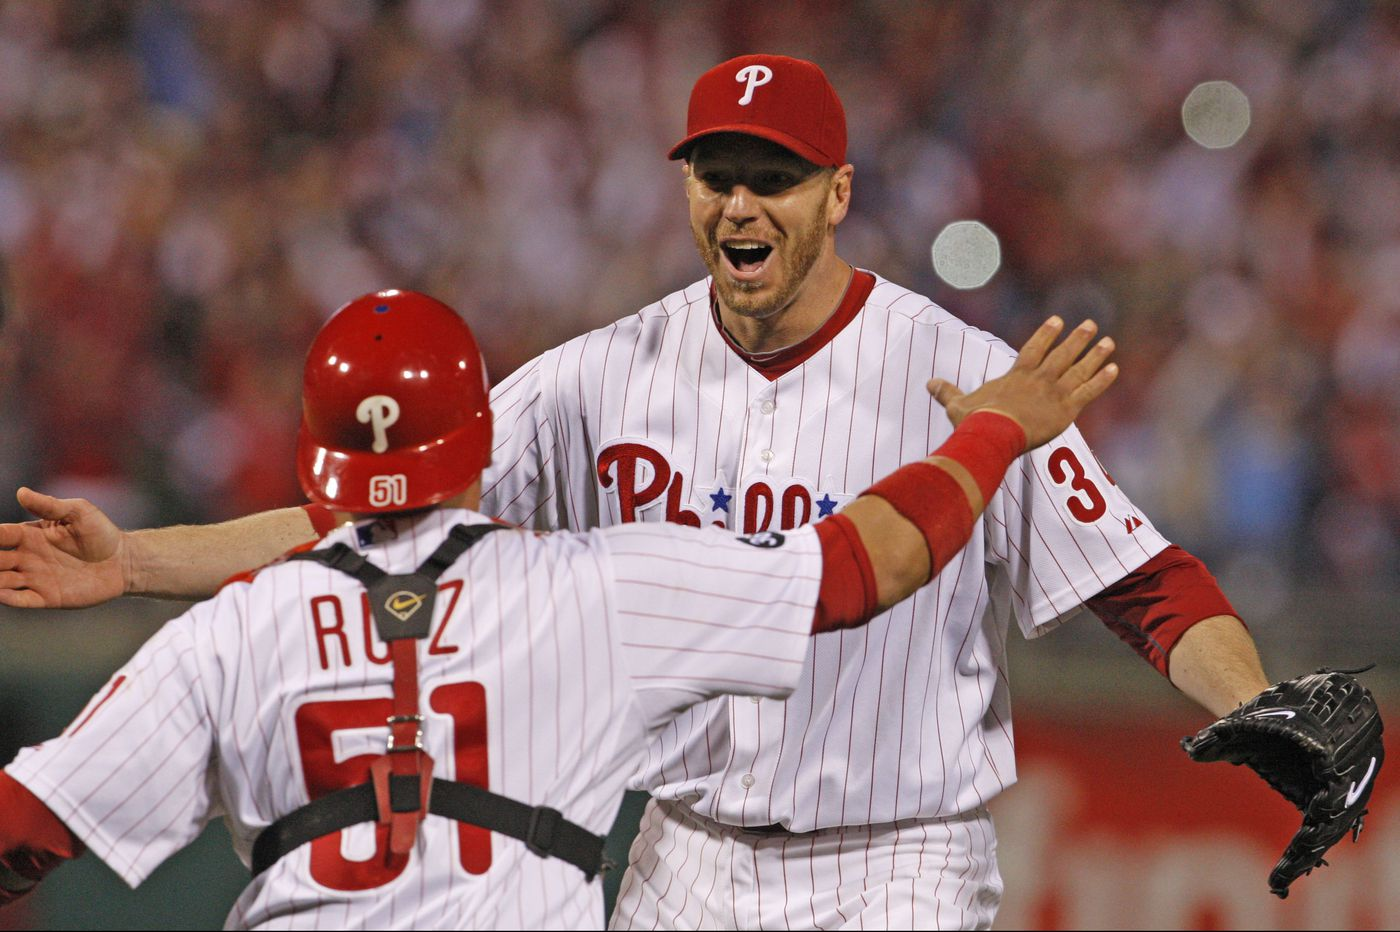 Remembering Roy Halladay's legacy one year after his death